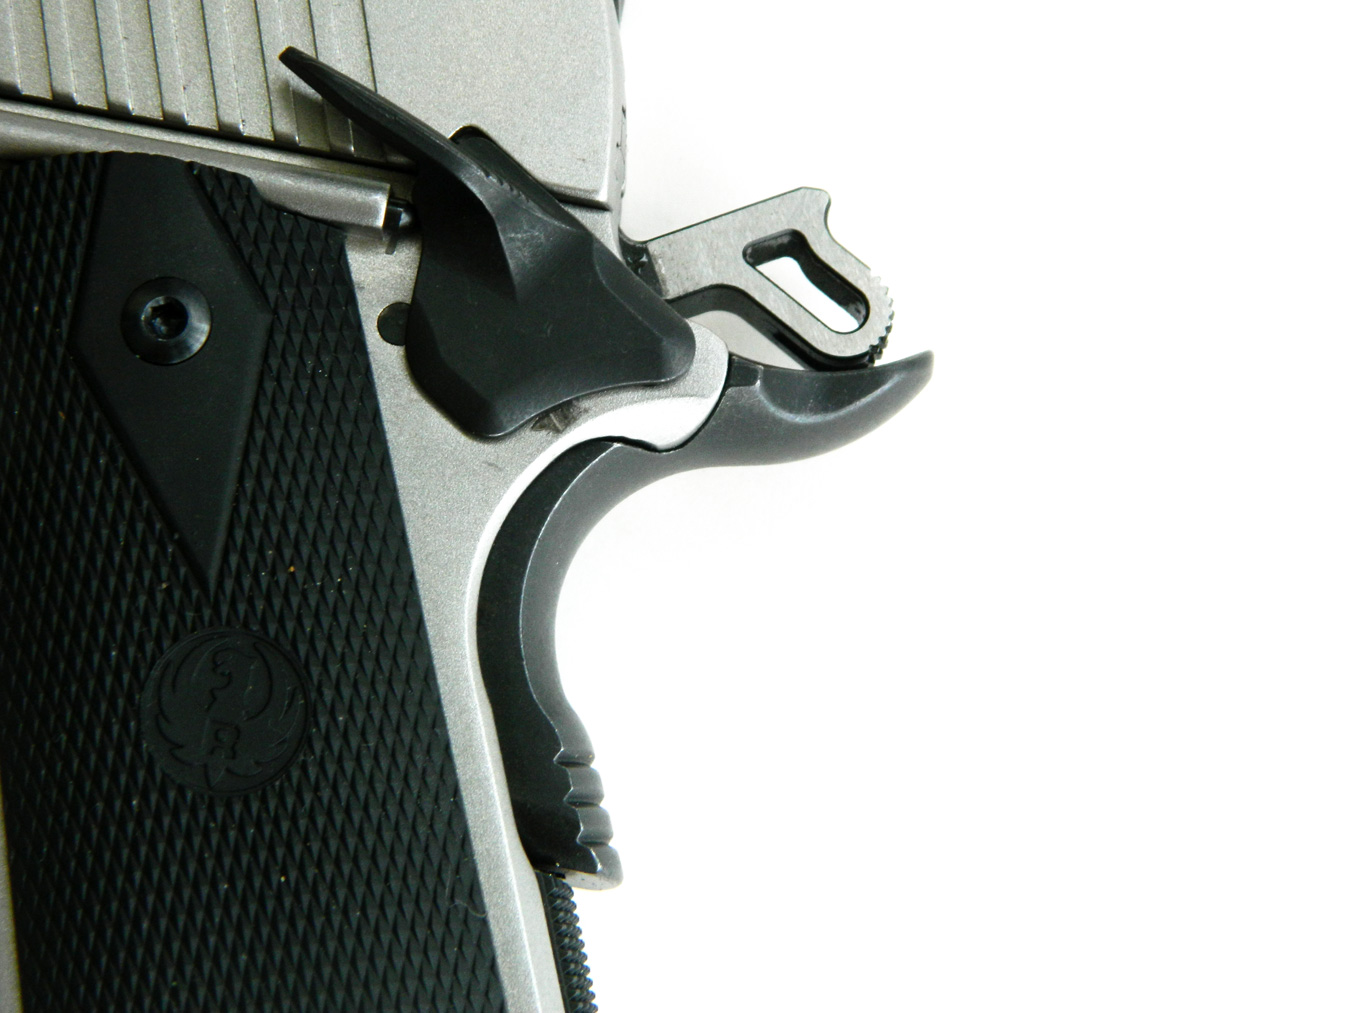 Custom-grade beavertail grip safety and extended slide lock safety on the Ruger SR1911 10mm pistol